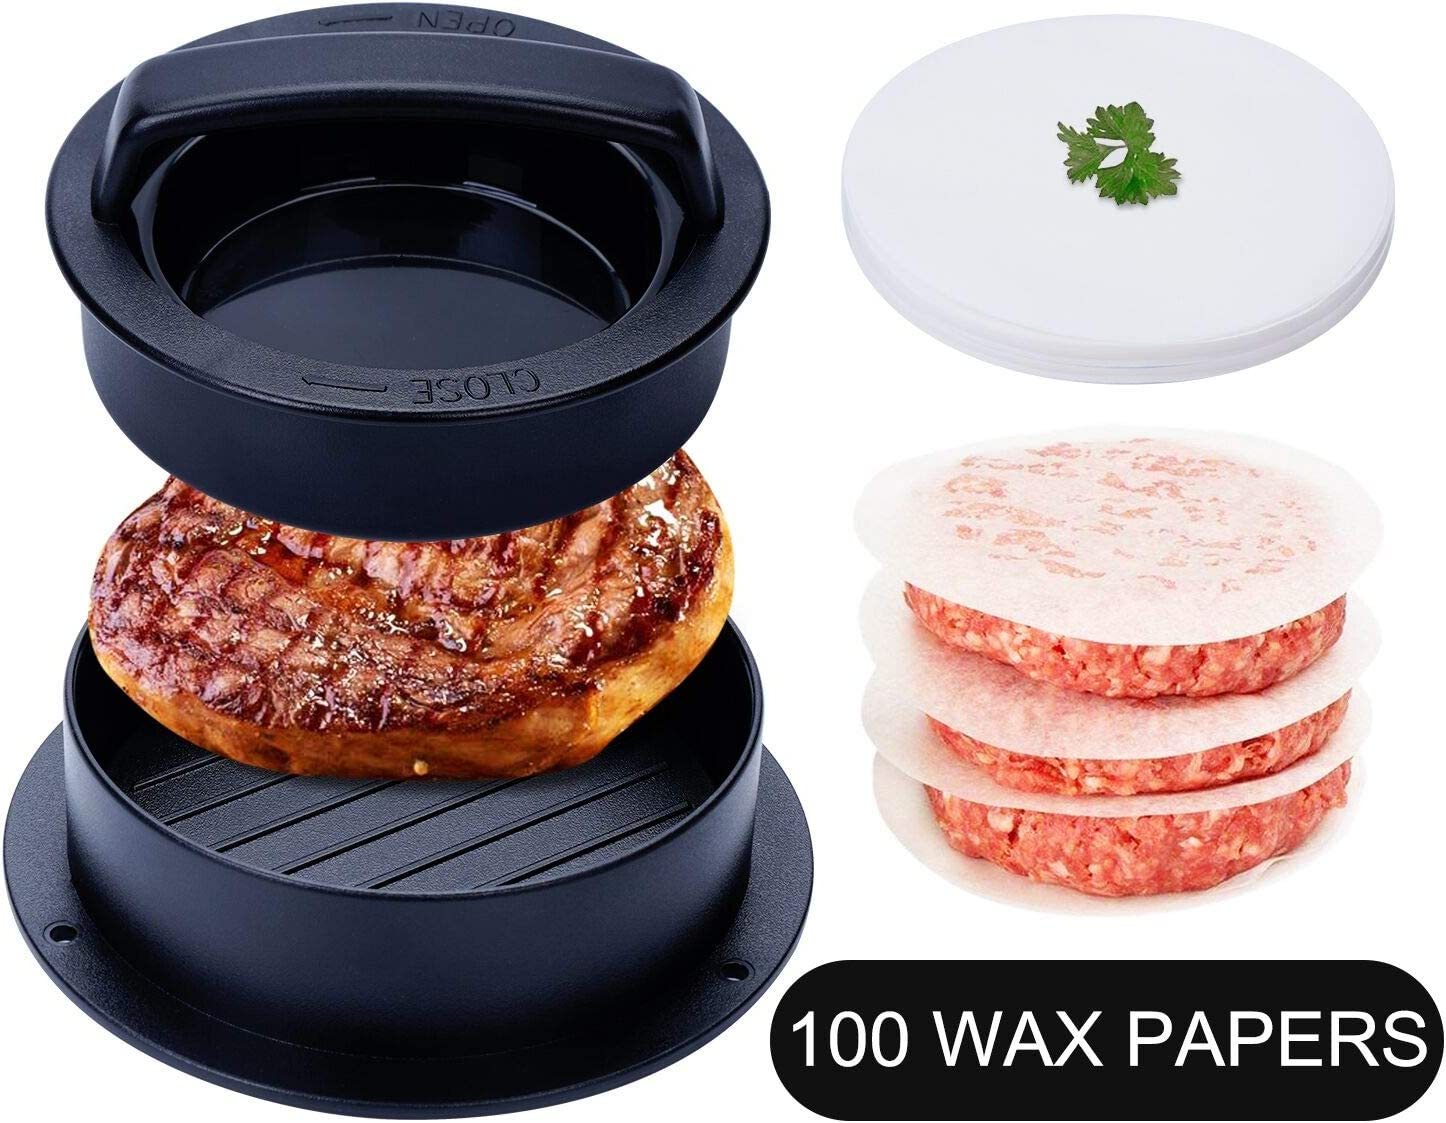 TDHDIKE 3-in-1 Stuffed Burger Press with 100 Free Burger Papers, Works Best for Stuffed Burgers, Sliders, Regular Beef Burger, BBQ Grilling & Gourmet Kitchen Tool